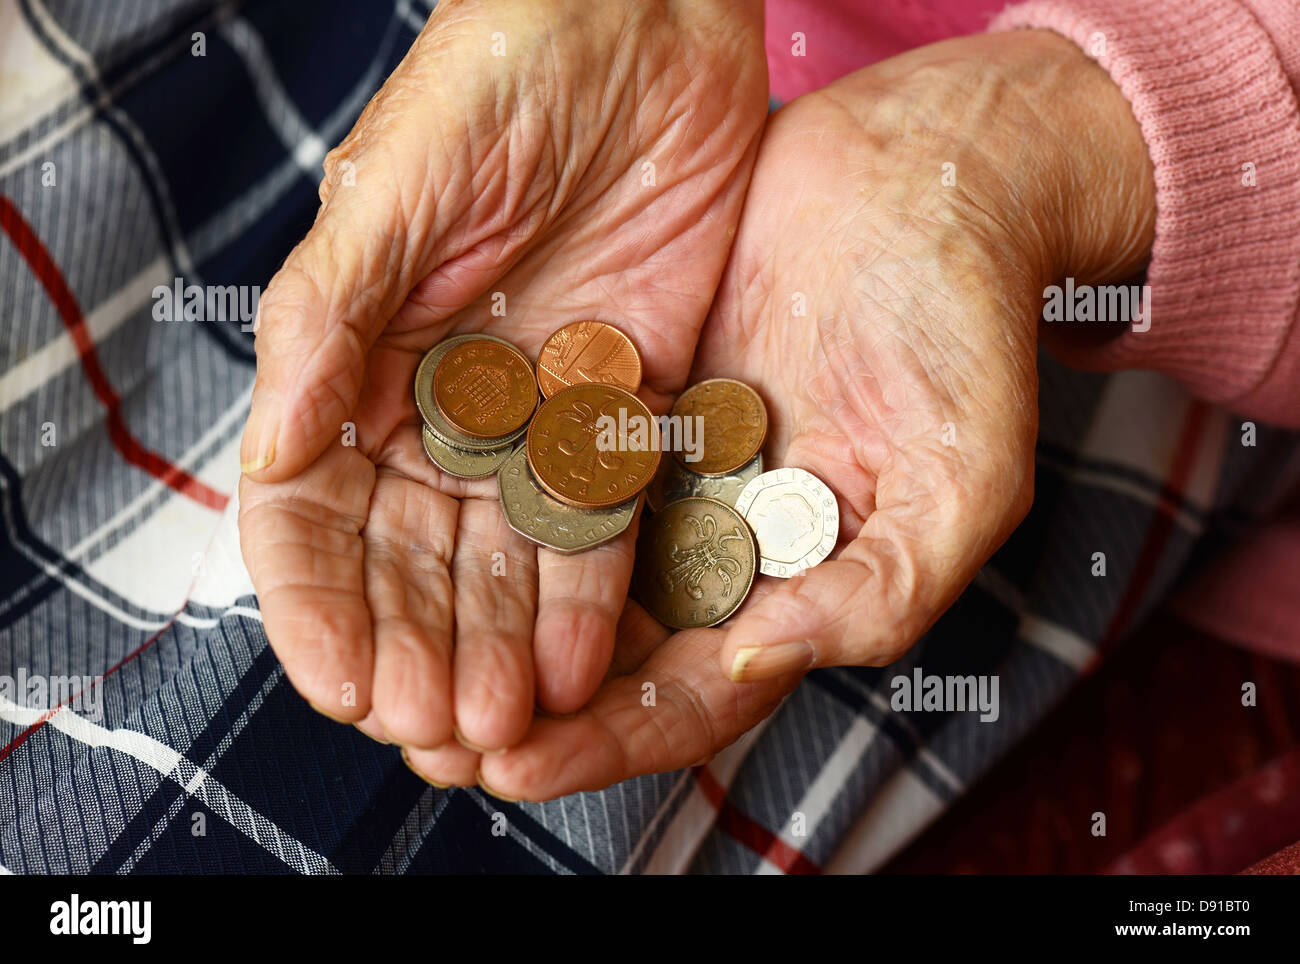 Money, coins in an elderly woman's hands, close up of cash in hands of older woman Stock Photo